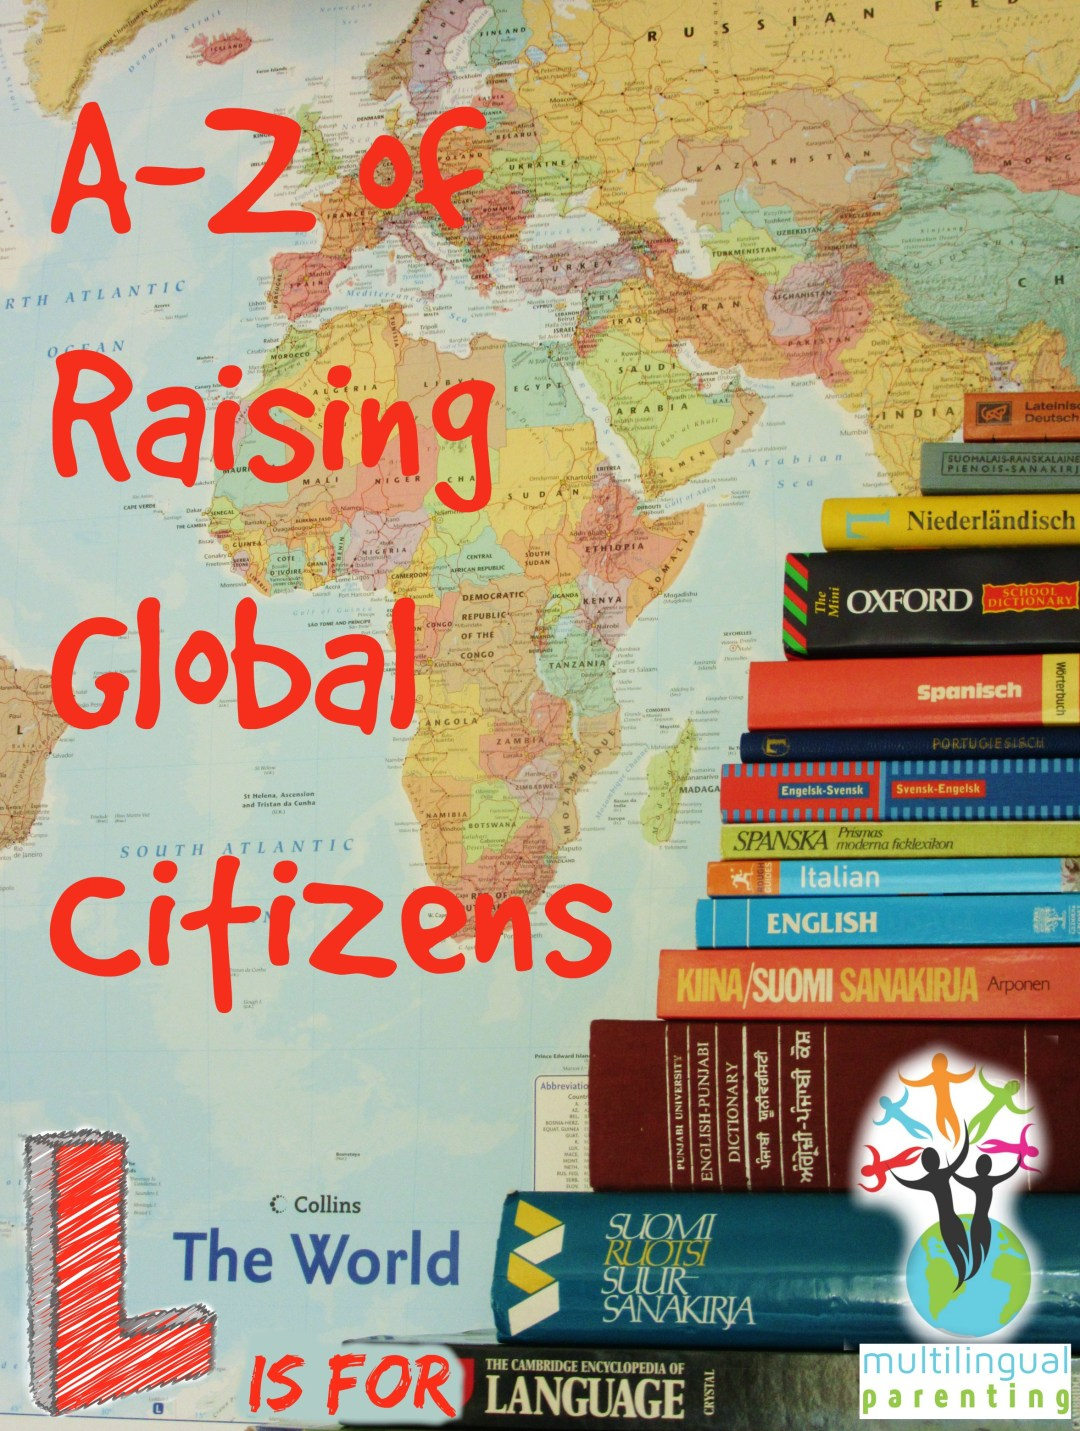 Raising Global Citizens - L is for Language